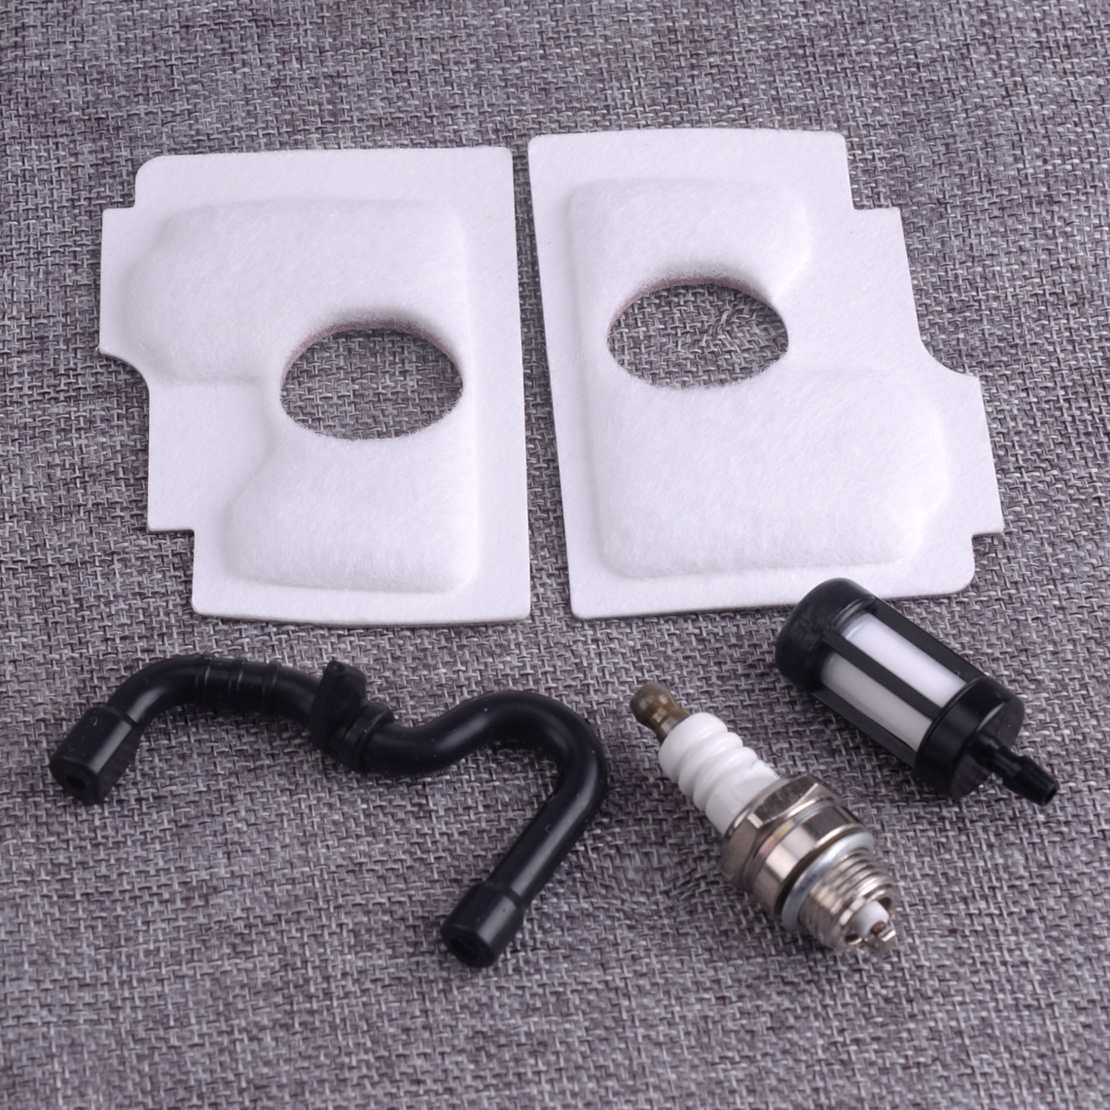 LETAOSK New Air Filter & Fuel Filter & Fuel Line & Spark Plug Tune Up Kit Fit For Stihl 018 MS180C MS170 017 Chainsaw